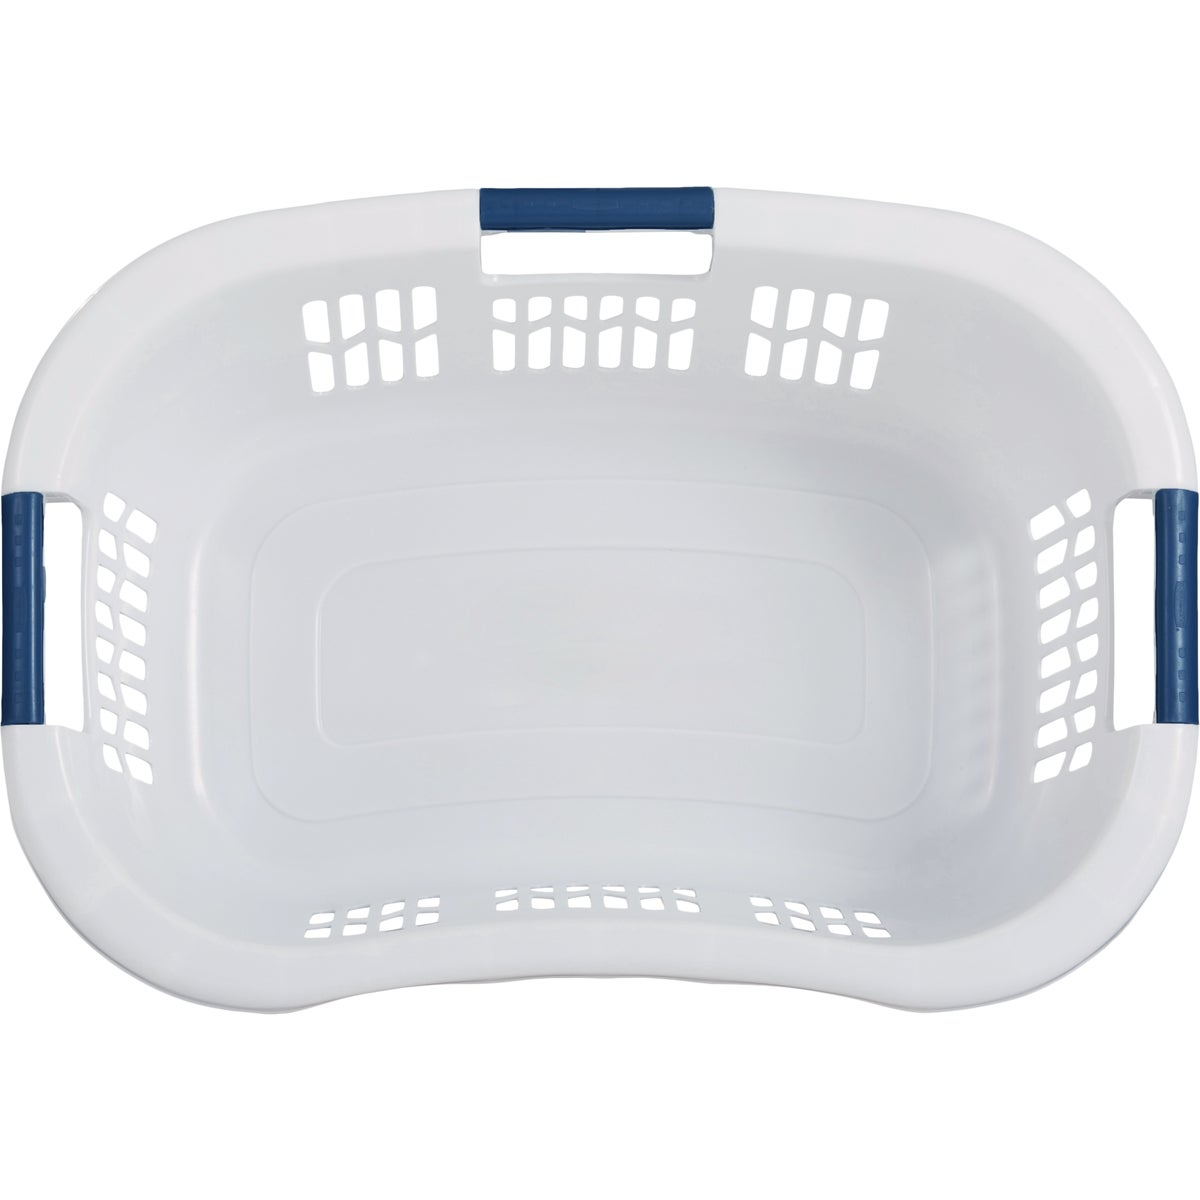 WHITE LAUNDRY BASKET - 299787-WHT by Rubbermaid Home